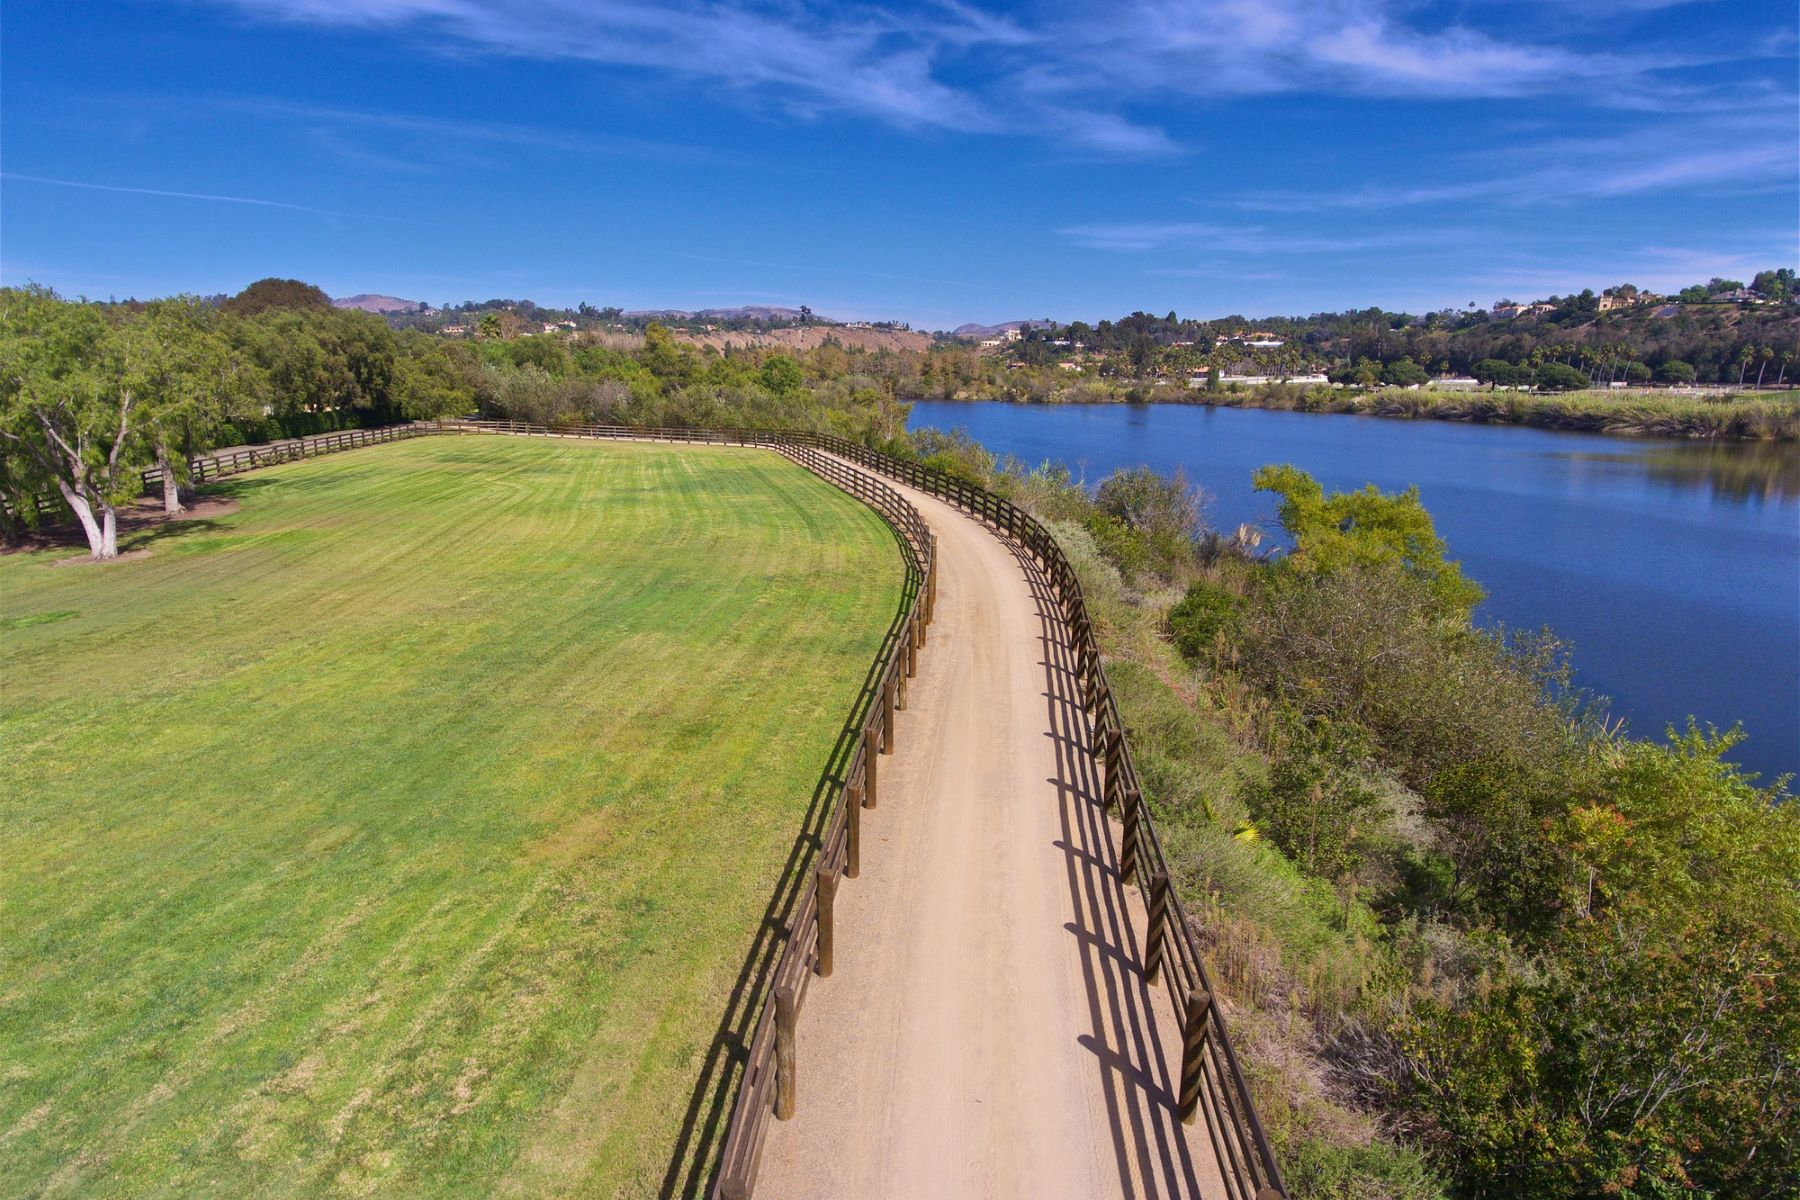 Additional photo for property listing at Willow Creek Estancia  Rancho Santa Fe, Kalifornien 92067 Vereinigte Staaten